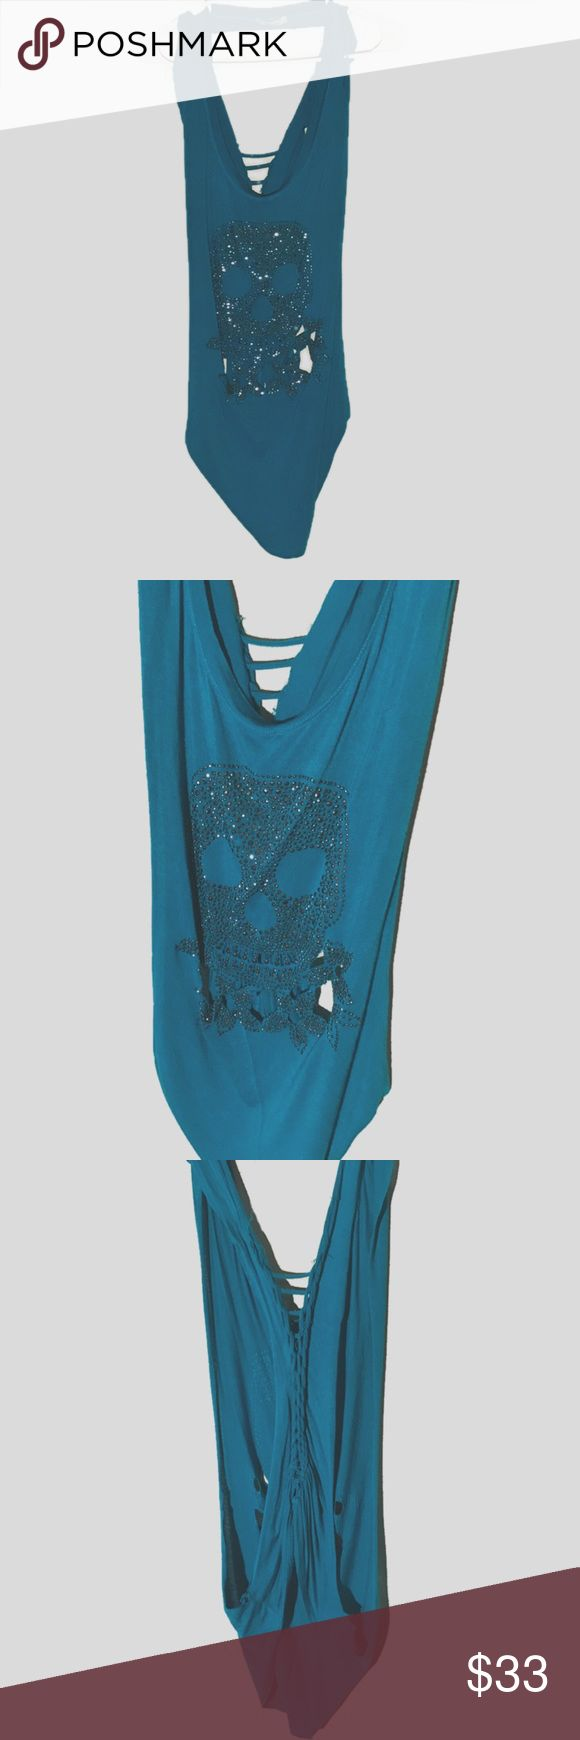 ✂️ Cut up turquoise skull muscle tank/tee ✨to purchase • www.revampdlife.com  this is a cut up muscle tank/tee. It is super stretchy turquoise fabric with a rhinestone skull on the front. The backups sliced & braided/weaved. This would go great over a bandeau, bathing shot or Cami. Lightweight and super cute! Size medium.  #turquoise #skull #rhinestone #embellished #cutup #weave #braid #muscletank #muscletee #layer #summer #stretch #revampdlife #danamariedior reVamp'D Tops Muscle Tees